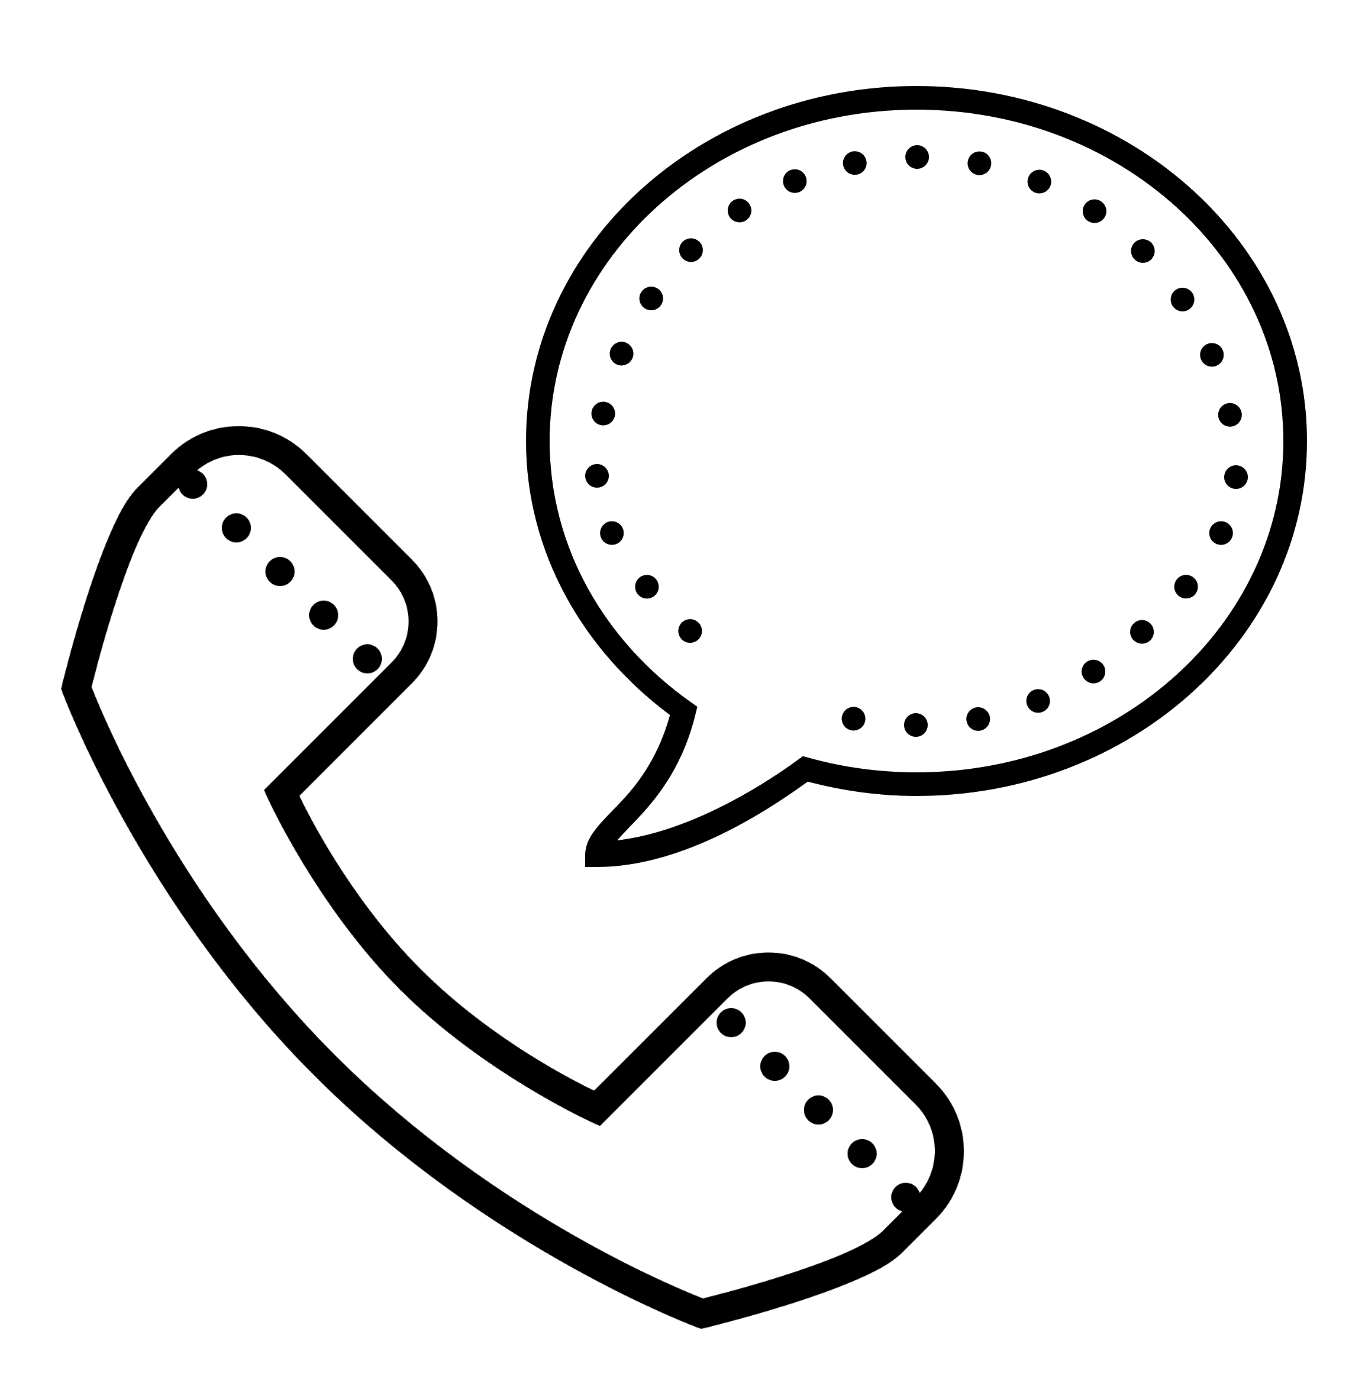 Speaking on the Phone icon